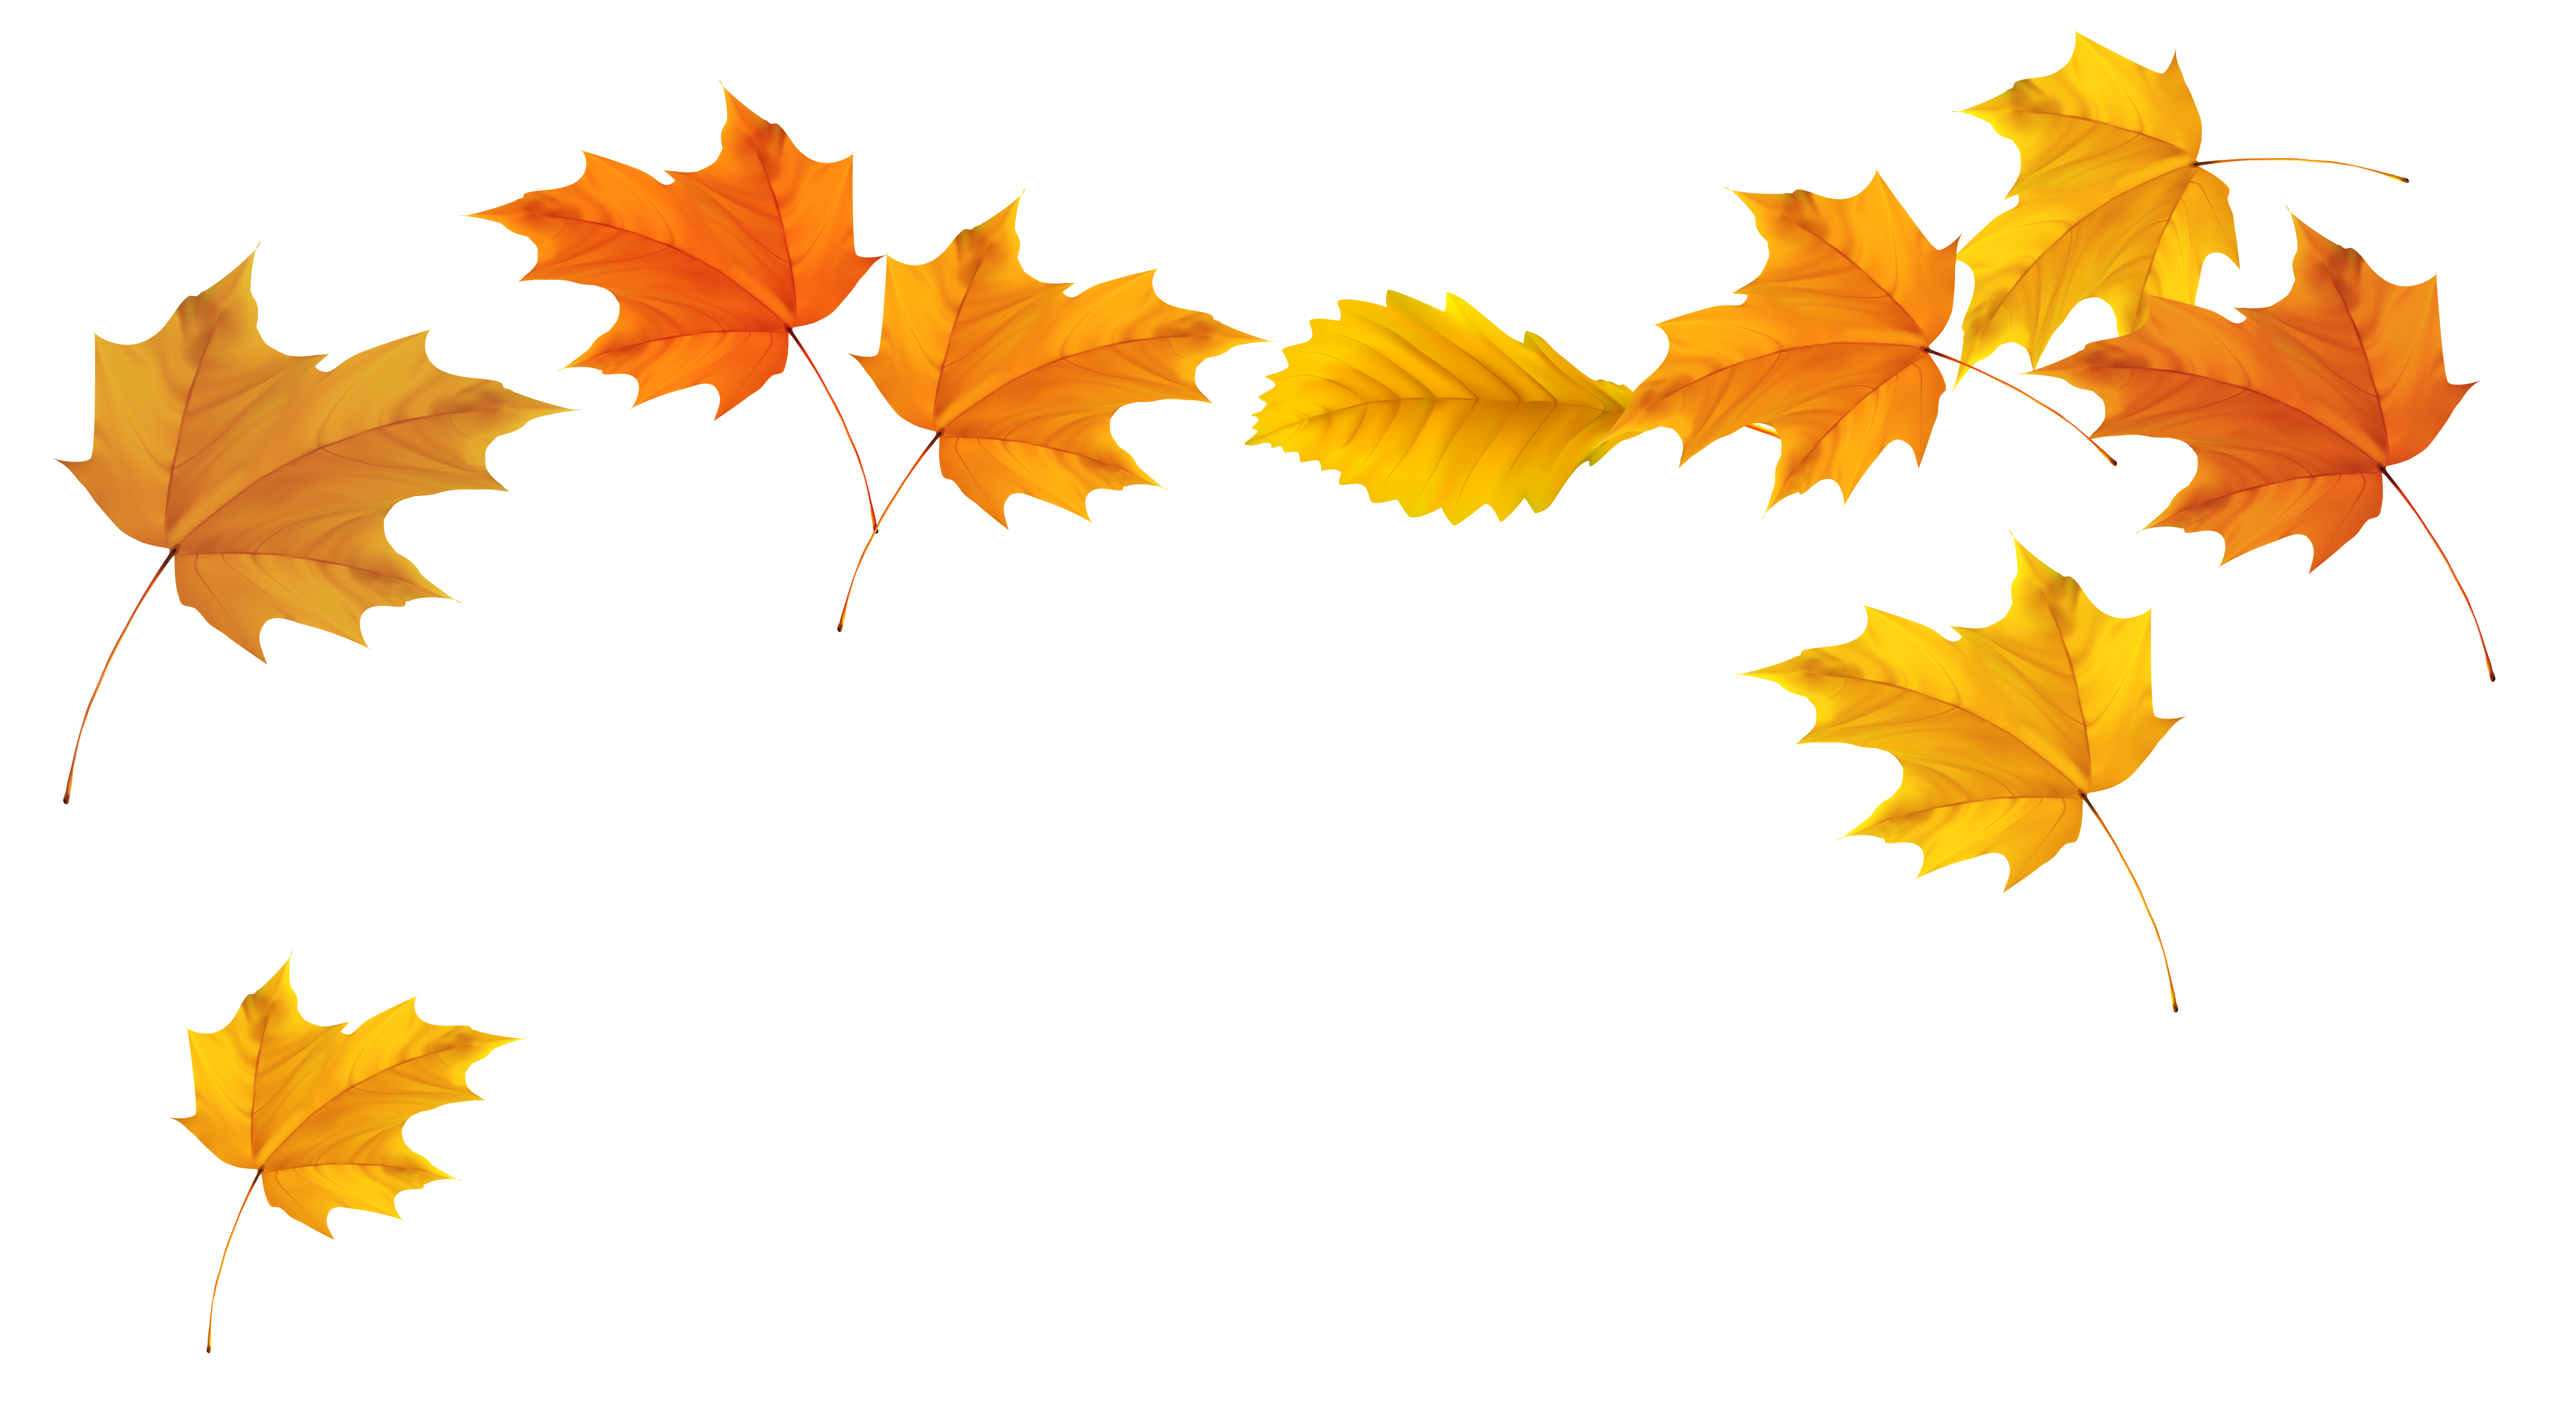 Clipart fall transparent background.